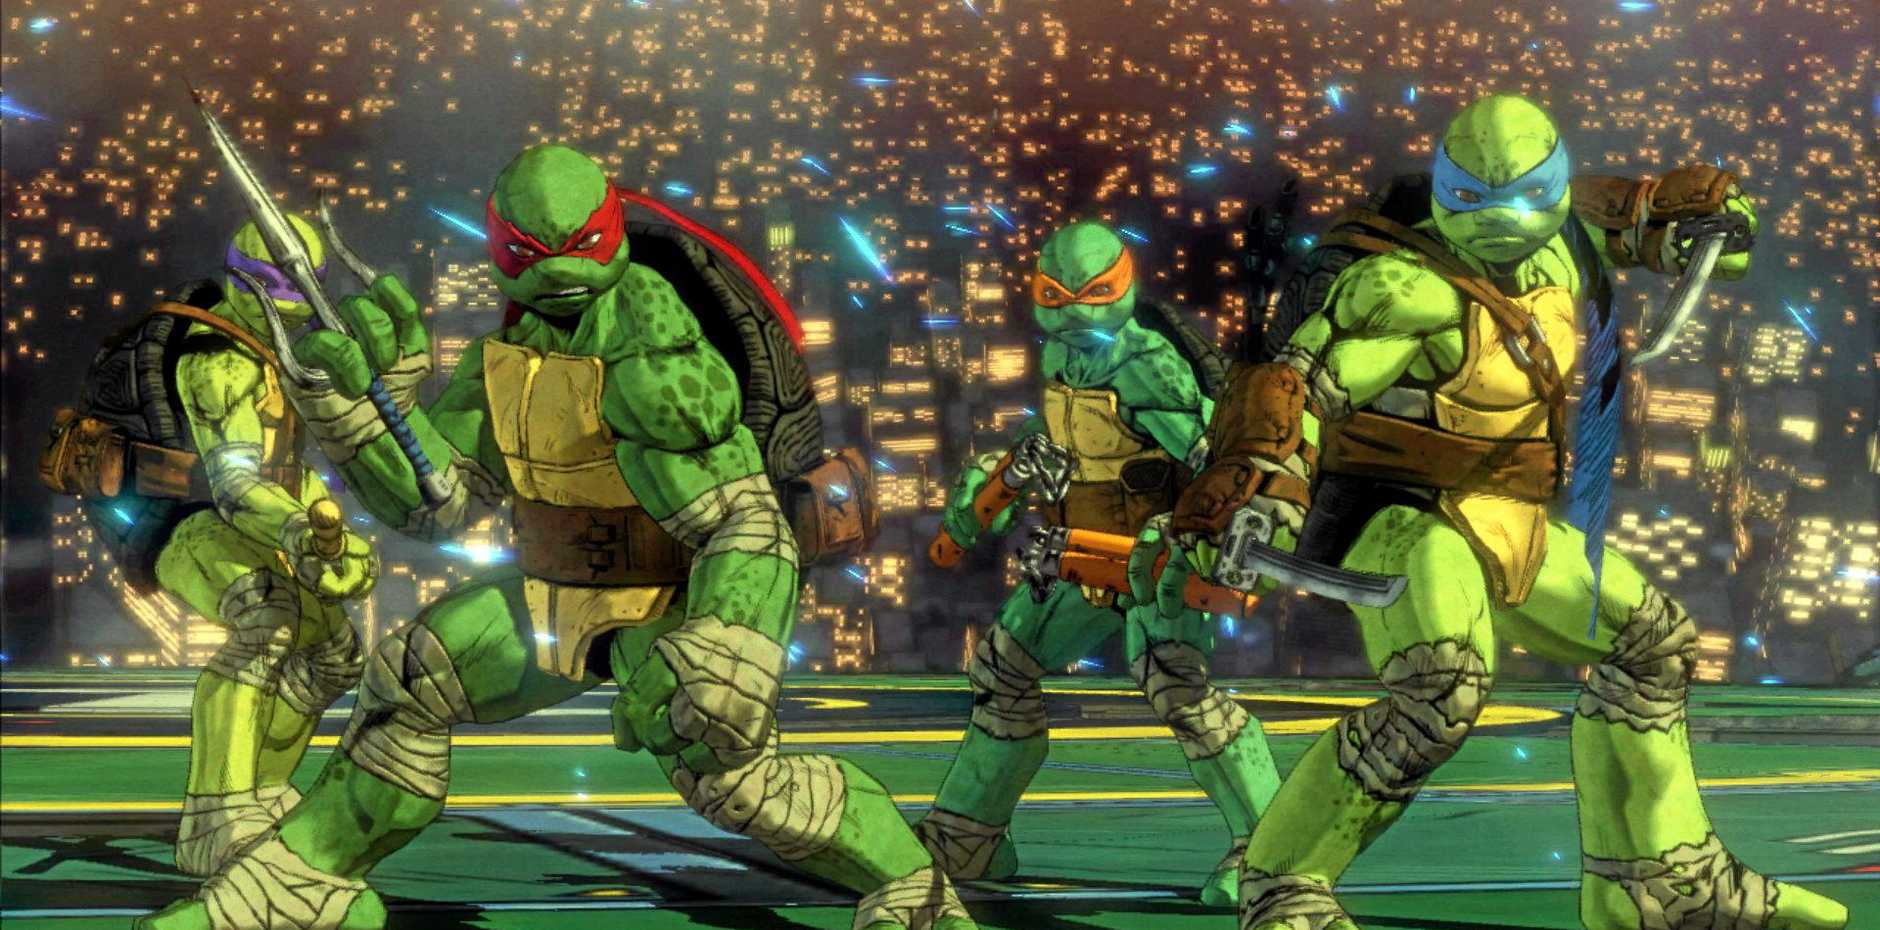 COWABUNGA: The Ninja Turtles mean a lot to plenty of gamers, but this is far from a celebration of the charm behind the franchise.